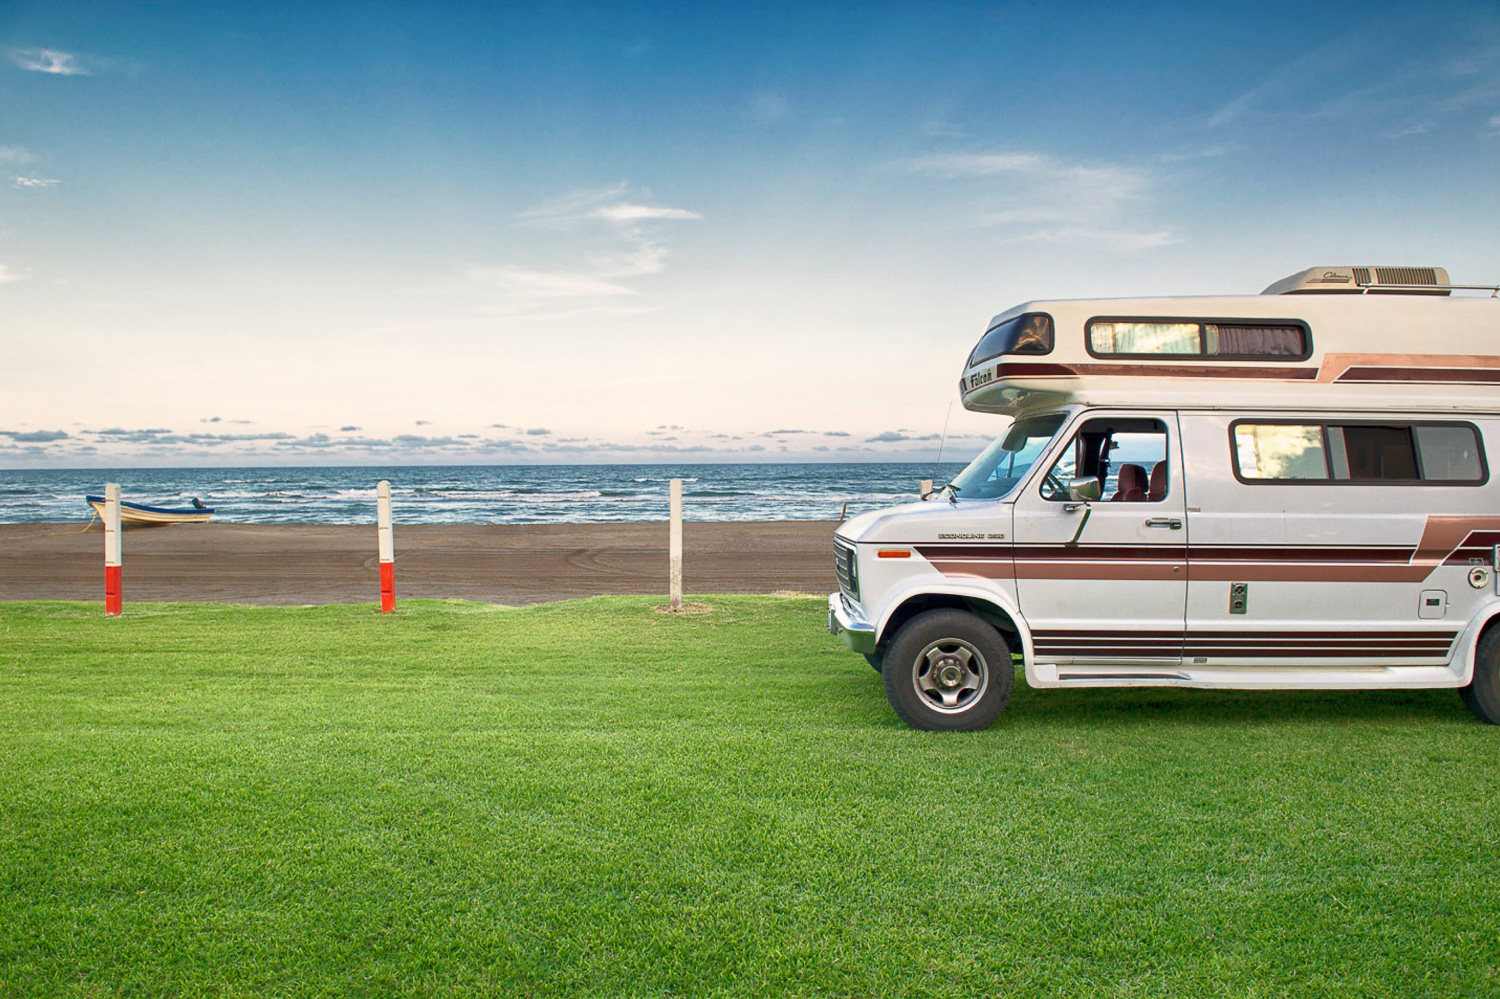 camper van on the grass - How to Organize Your Photos by Location in Lightroom